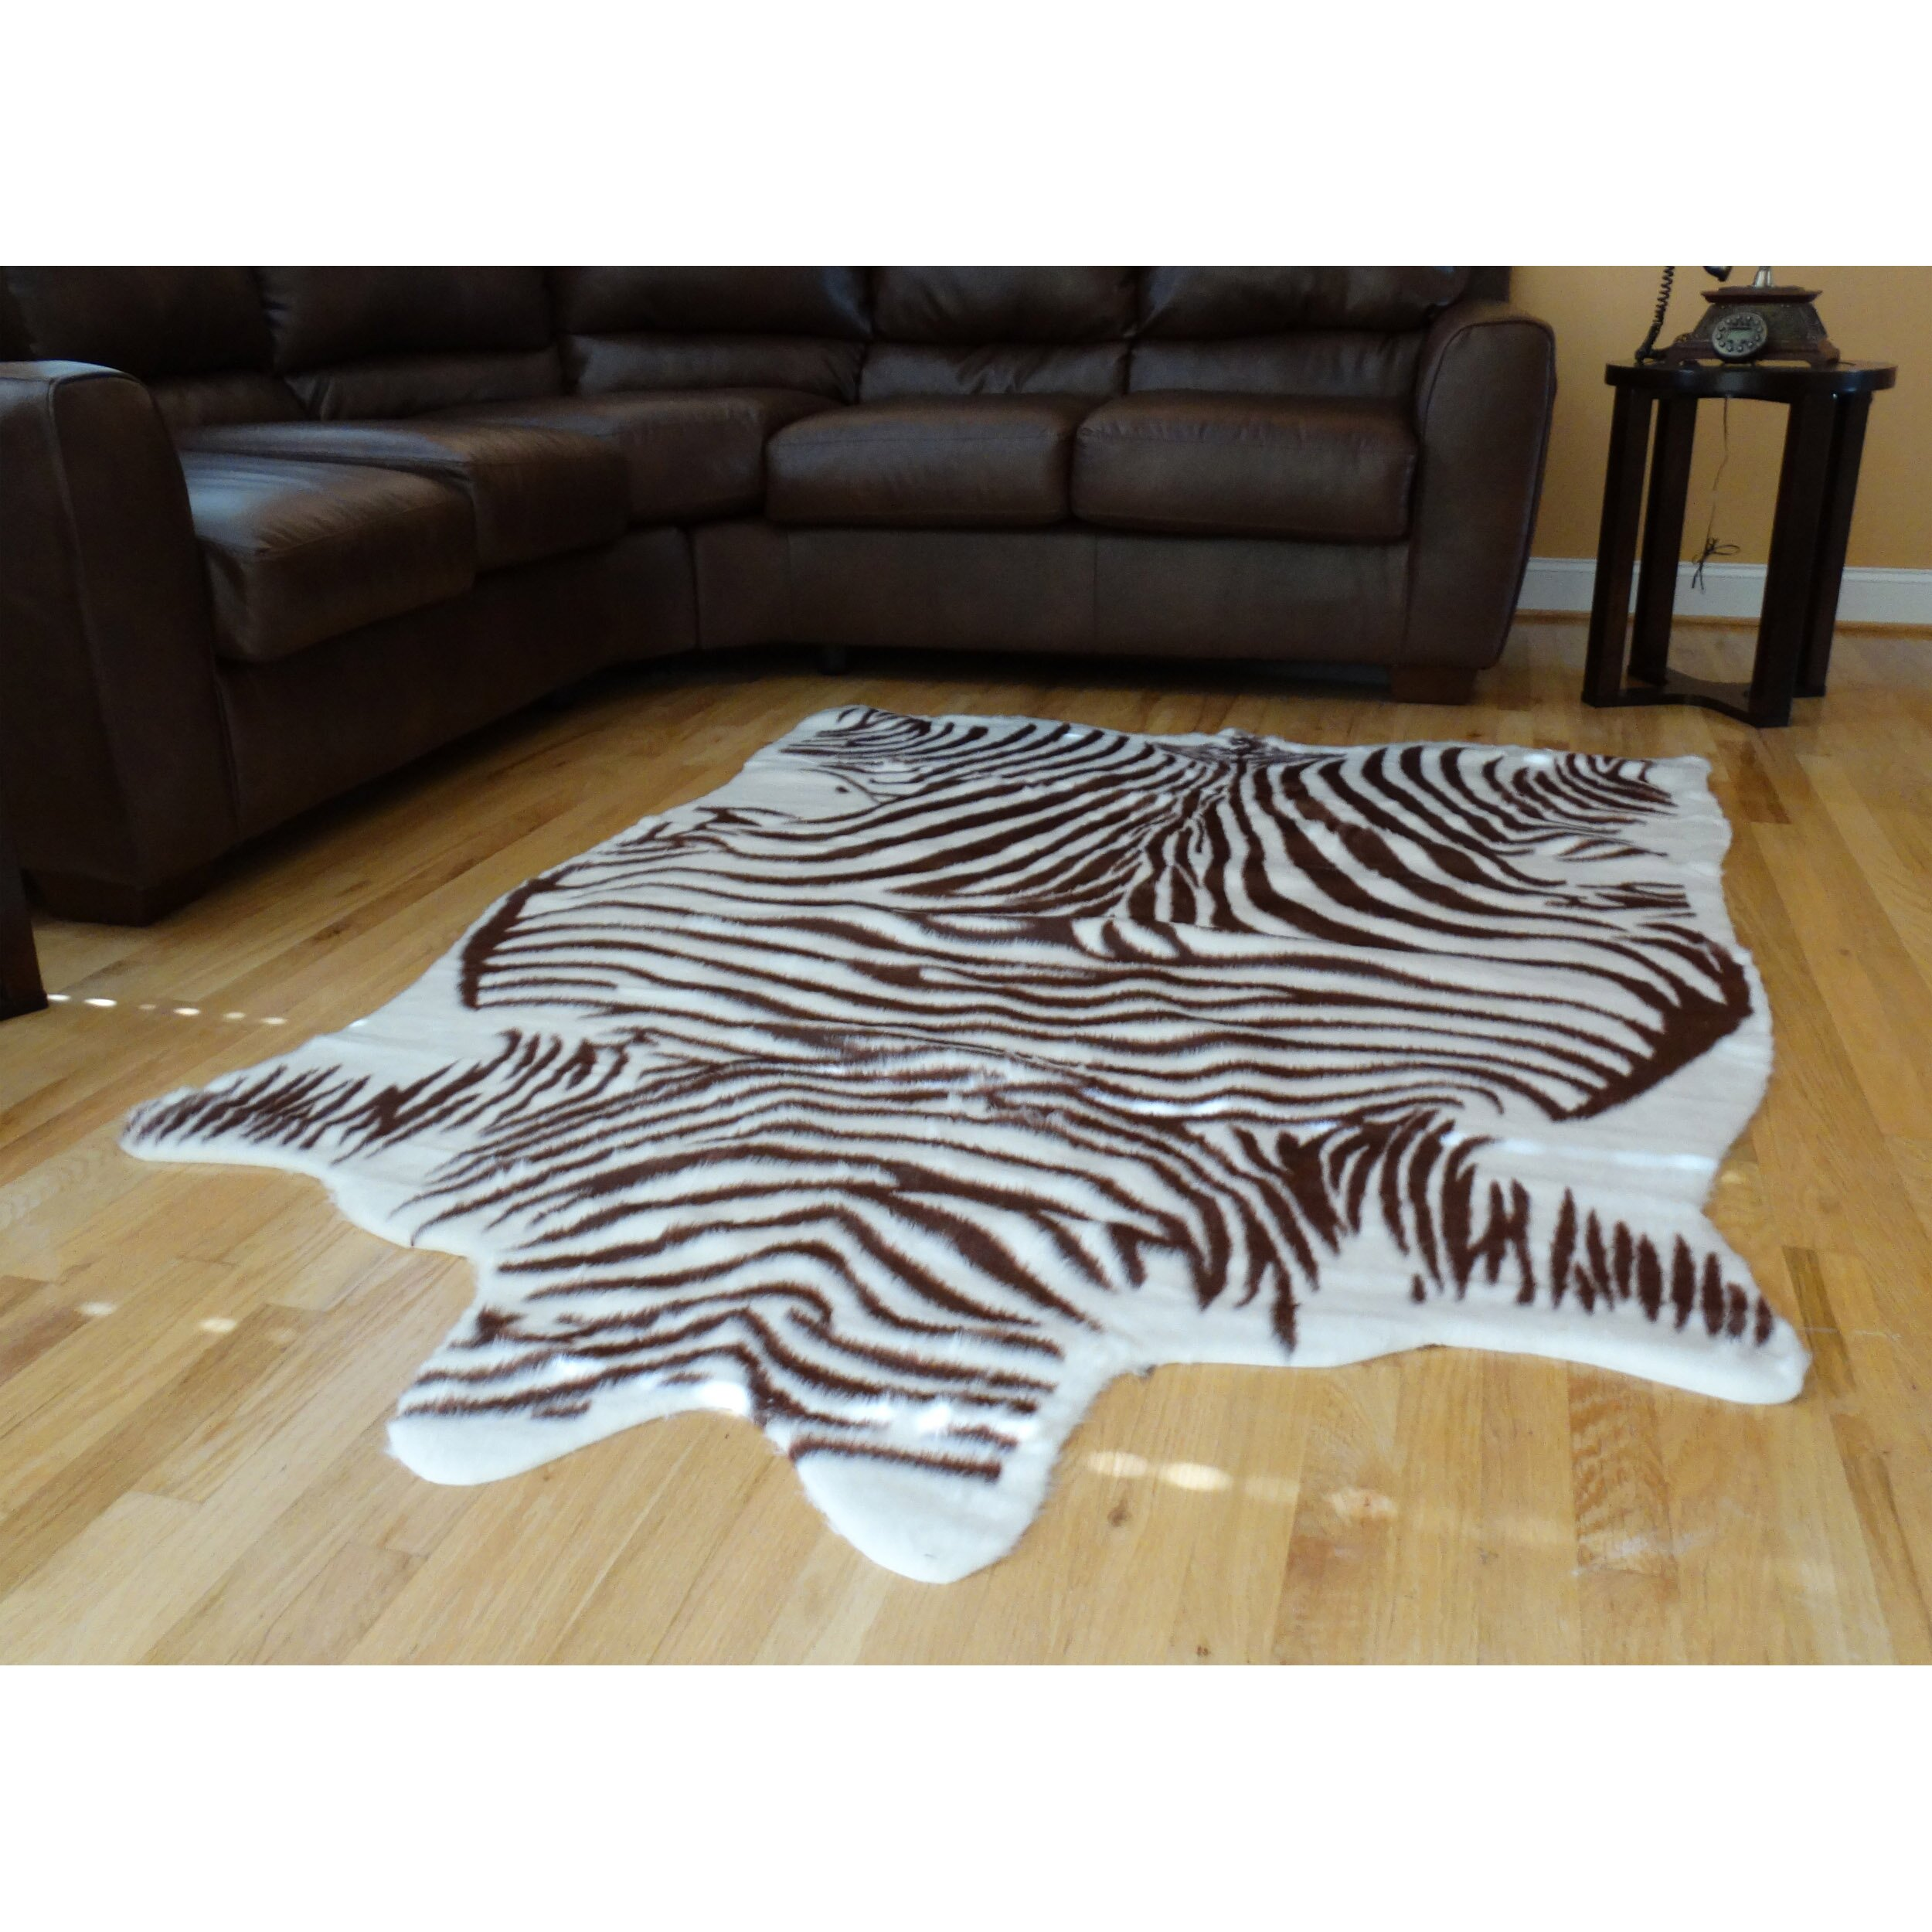 Acura Rugs Animal Hide Brown/White Zebra Area Rug